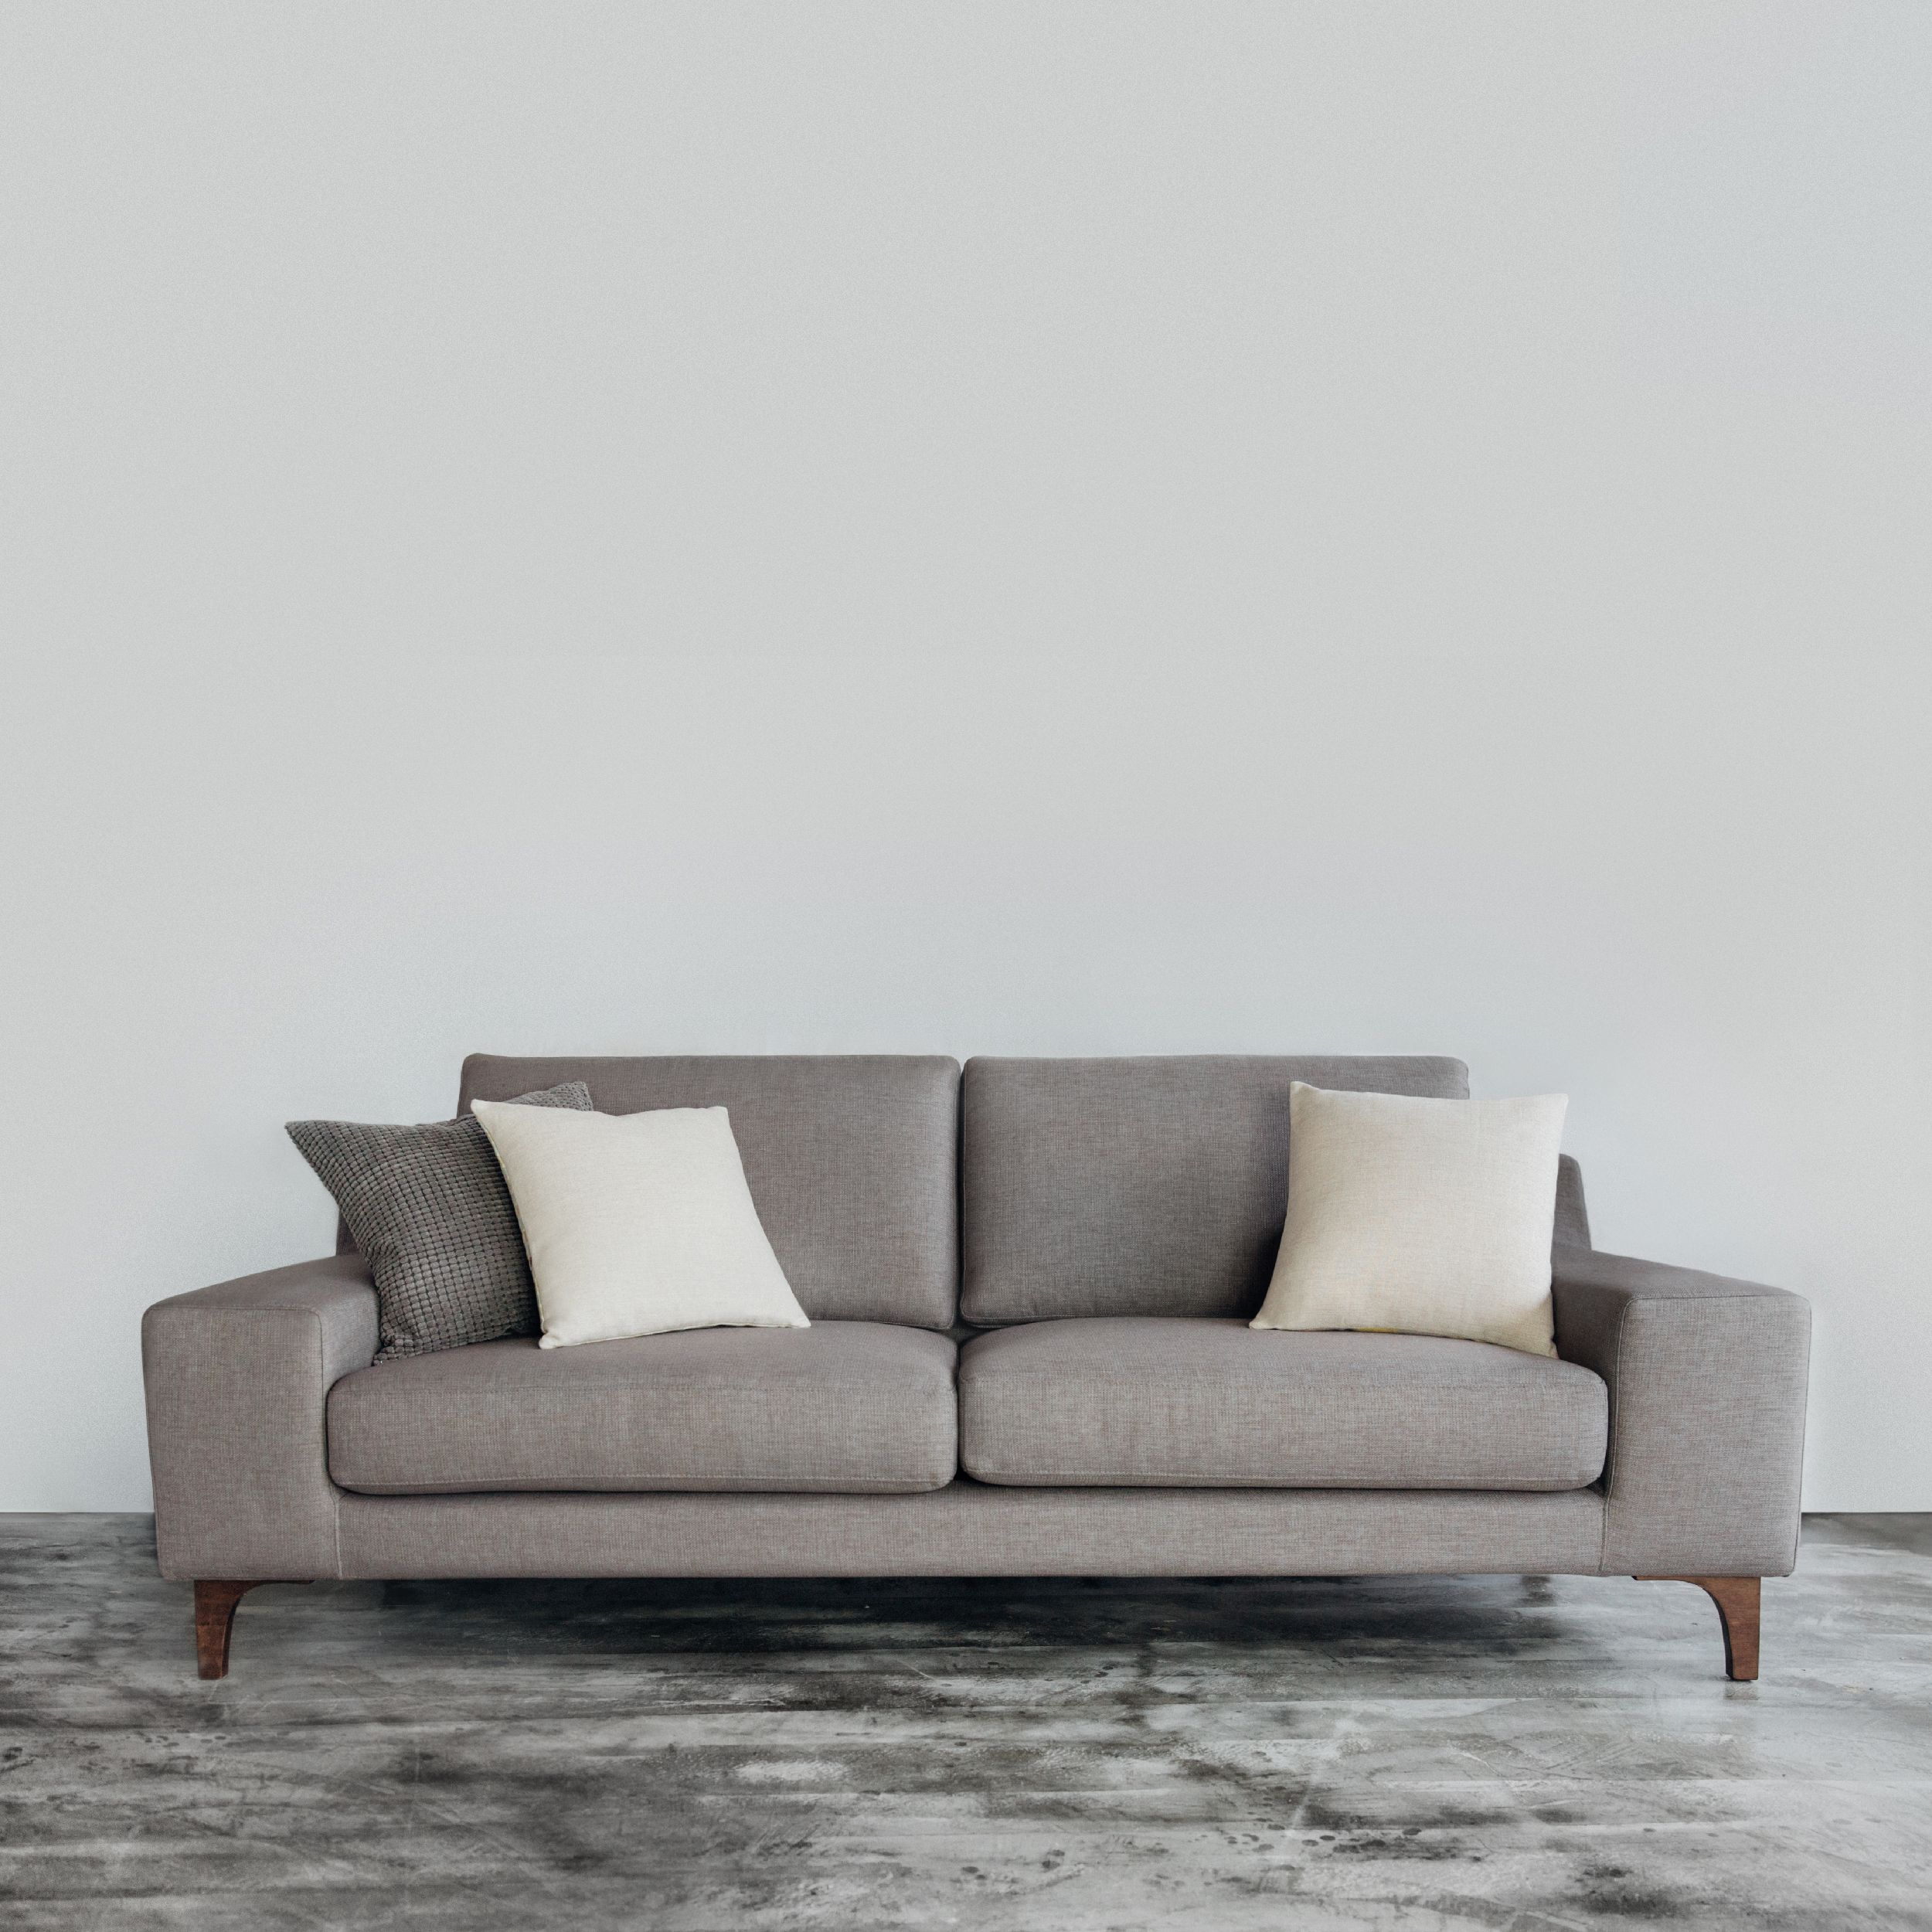 Grande Fabric Sofa All Our Sofas Are Built With A Kiln Dried Hardwood Frame For Sturdiness And Durability Customizable In Fabric Sofa Furniture Design Sofa